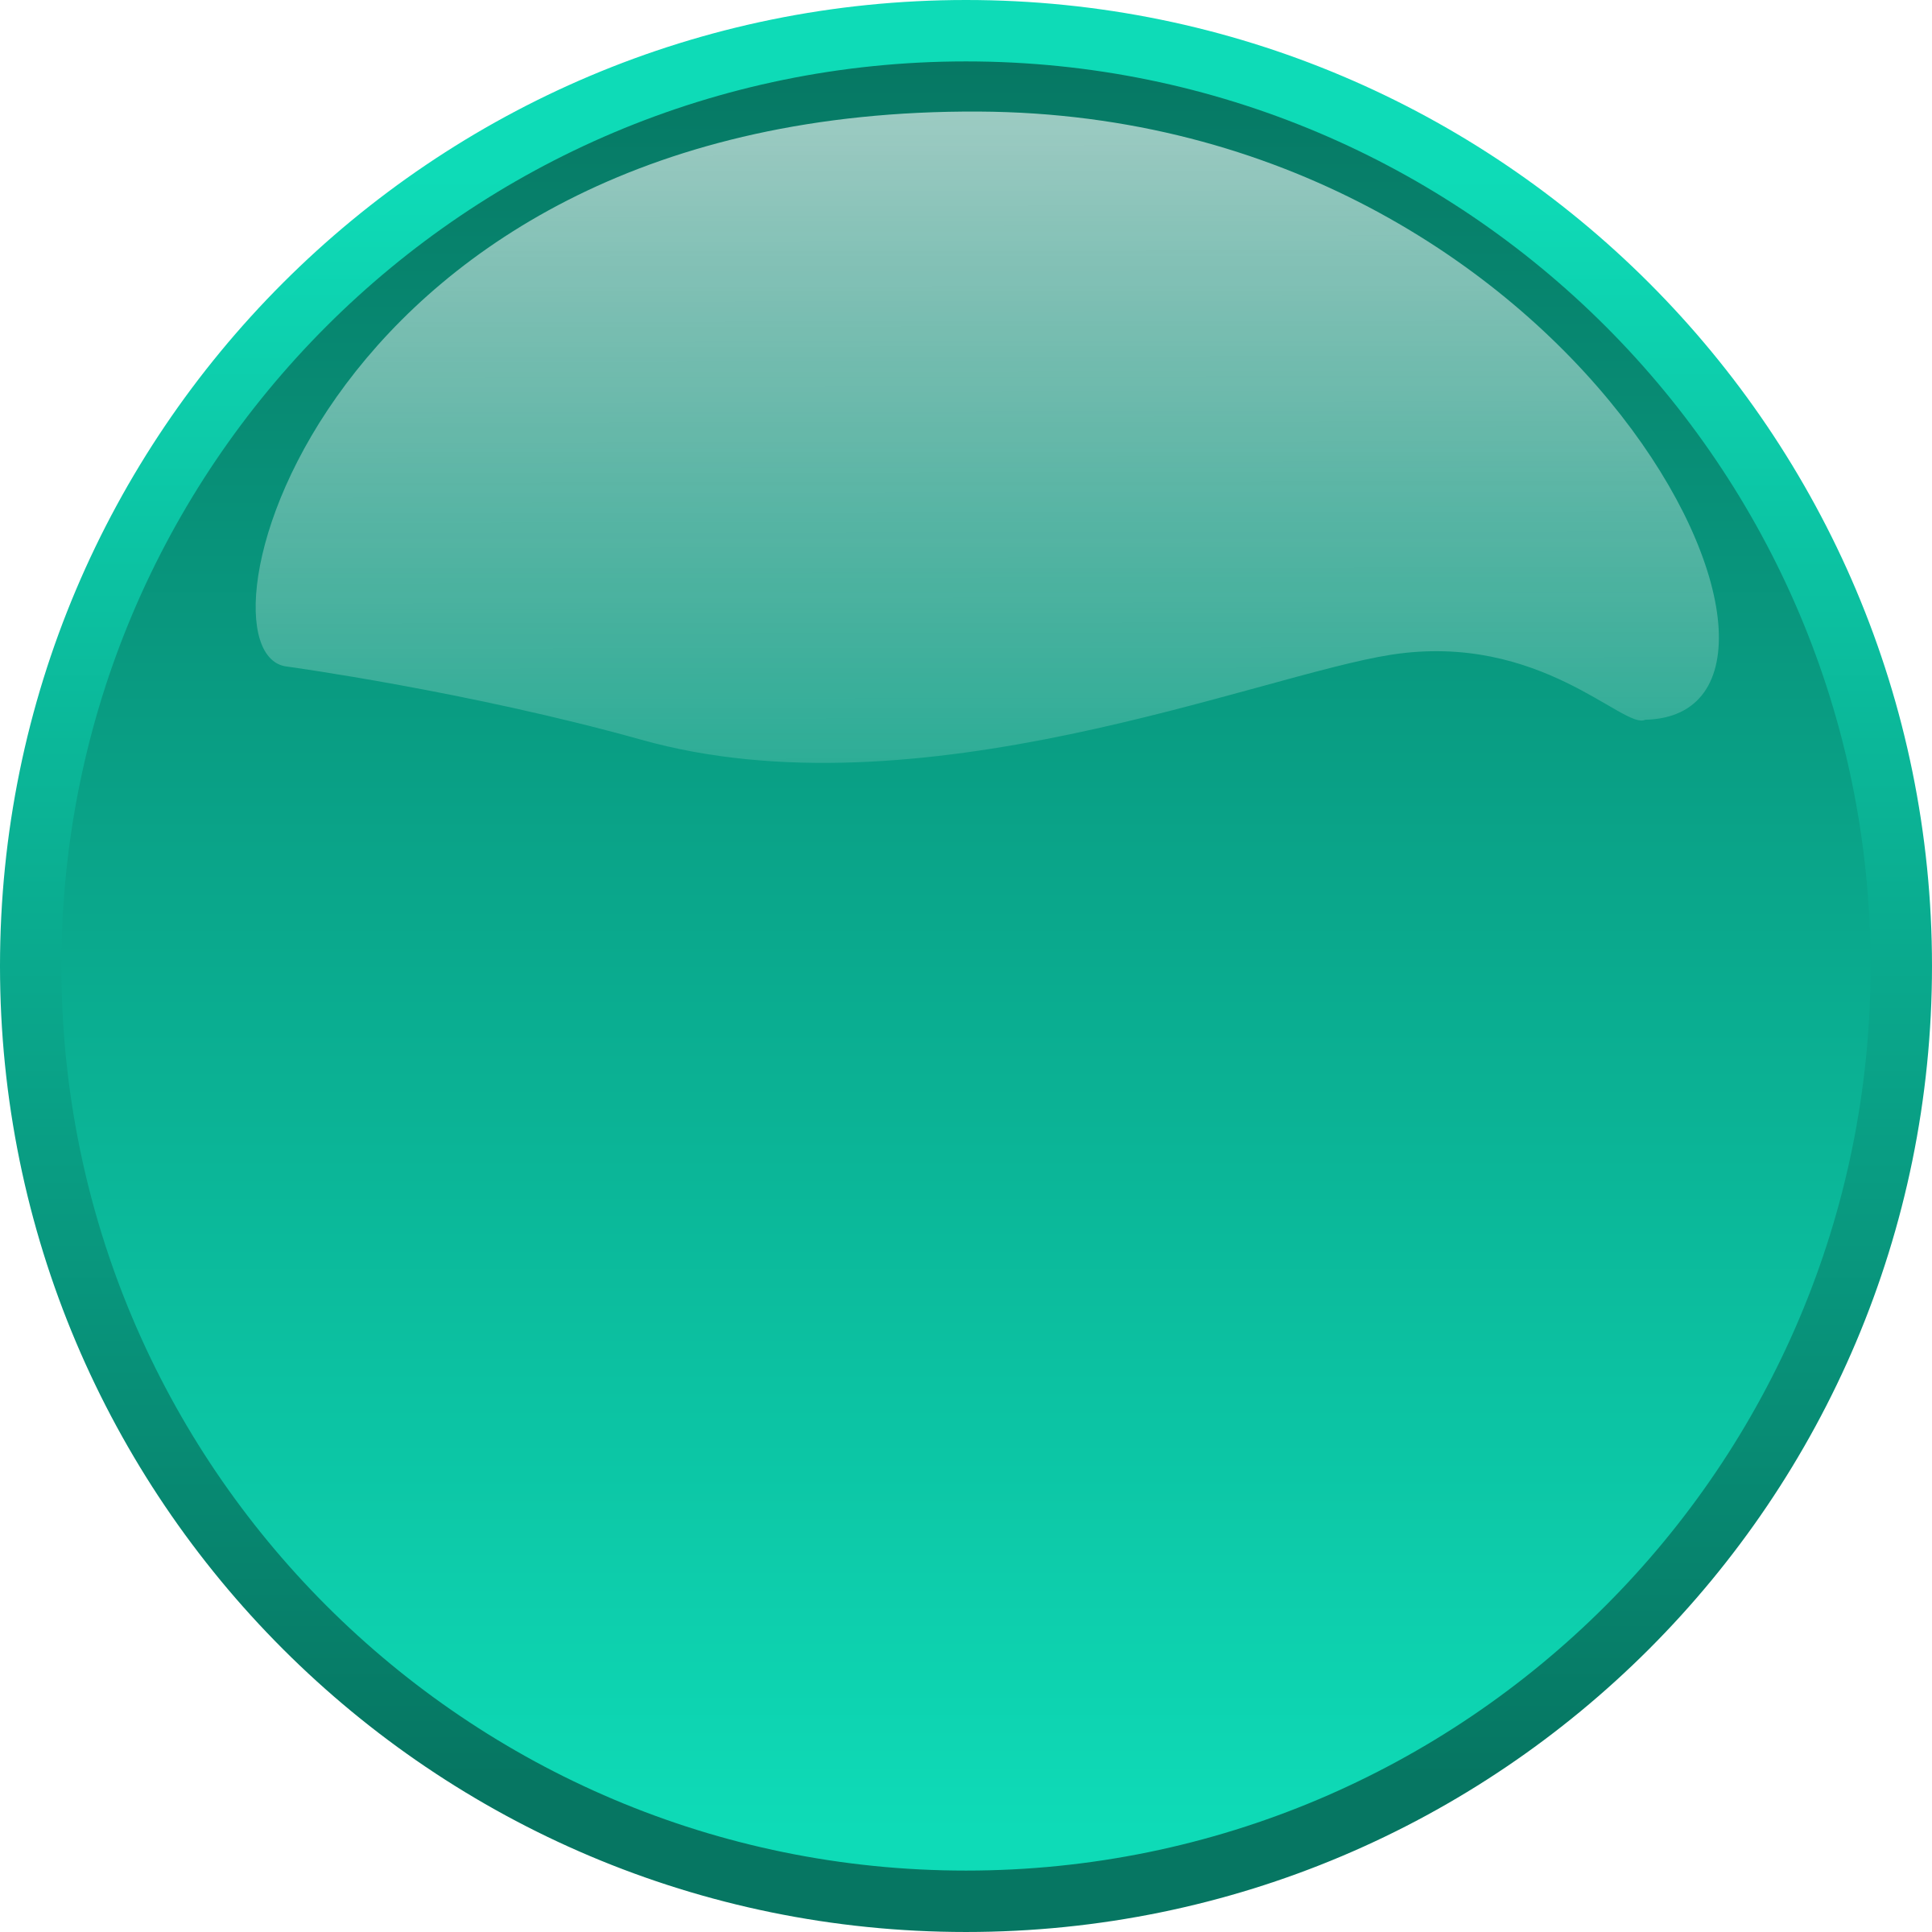 Button Cyan by bpcomp